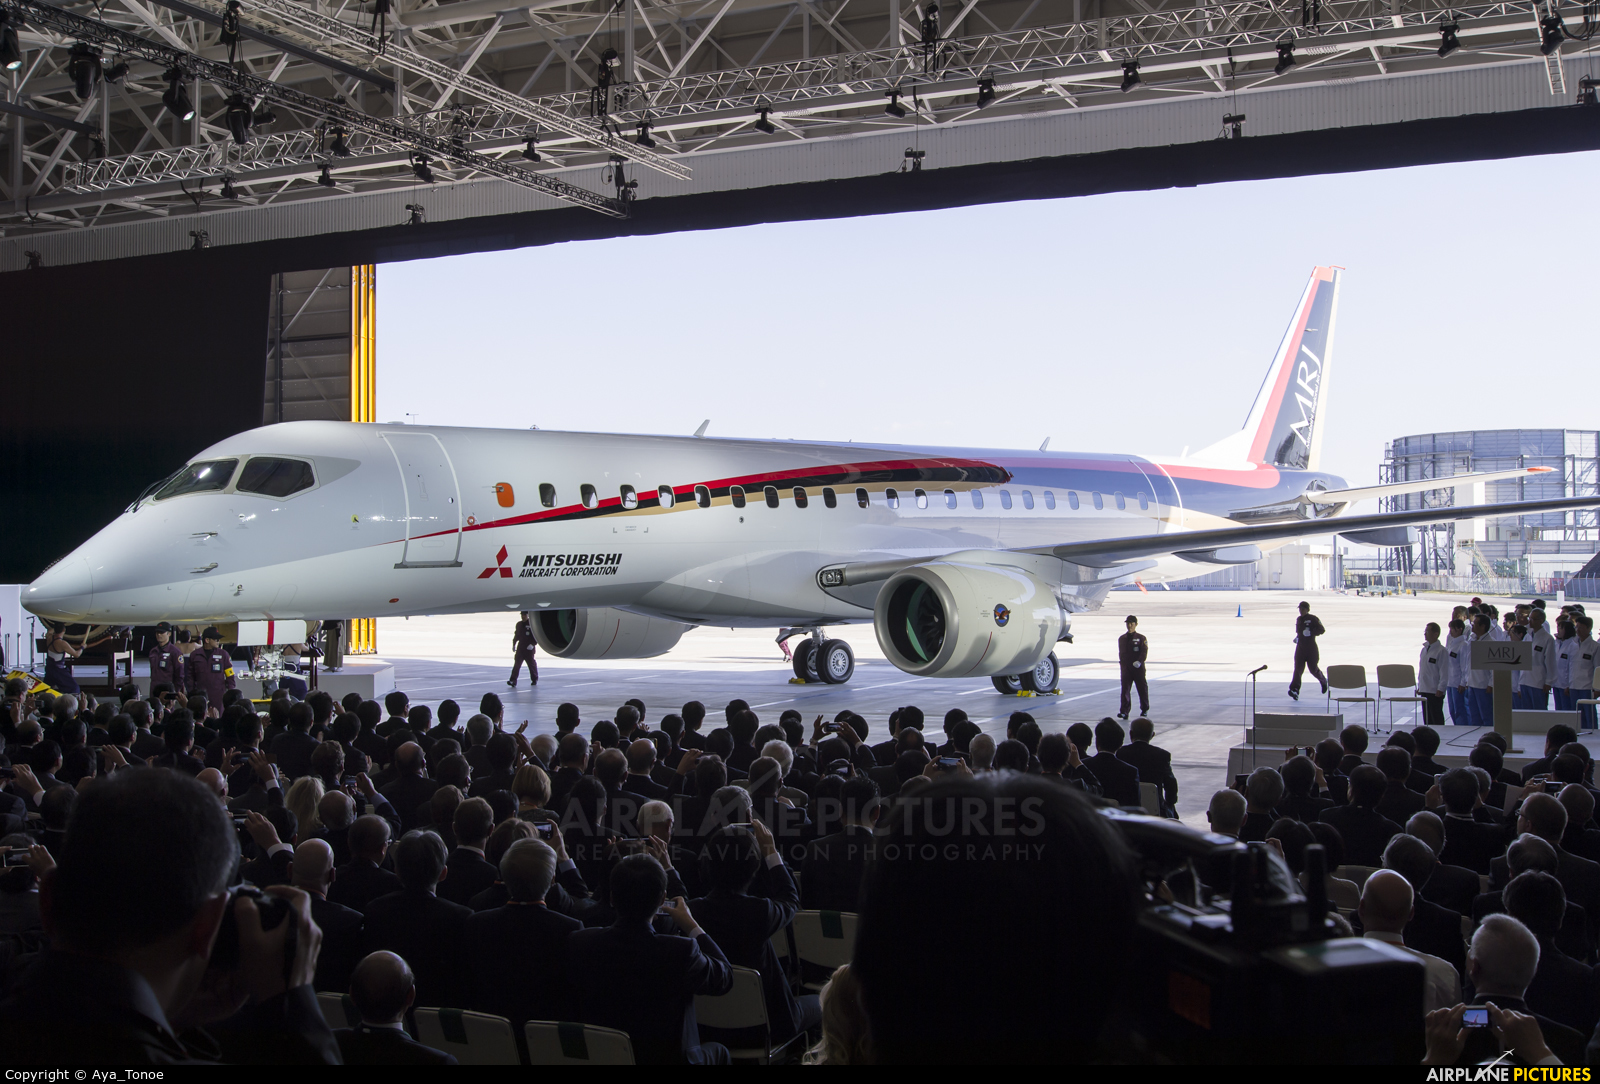 mitsubishi s bid to diversify into aviation mrj90 mexico rh aerospacemx com